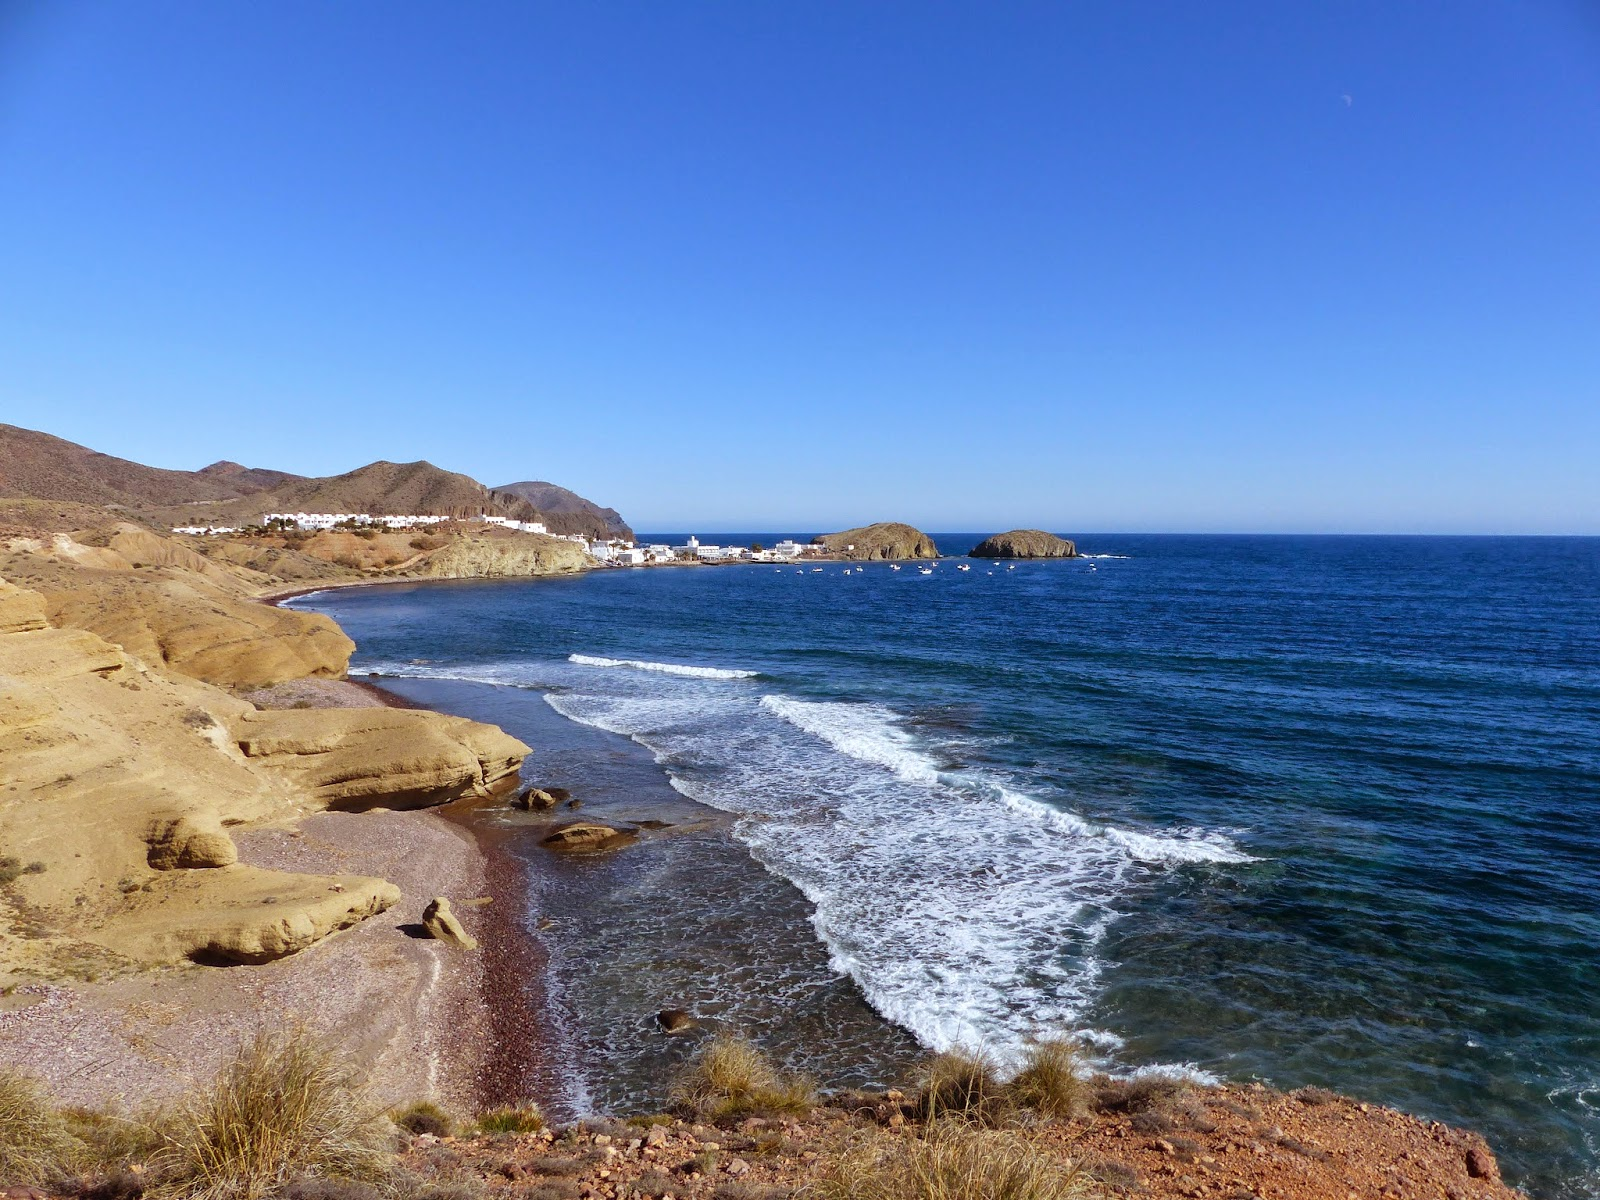 View towards La Isleta del Moro